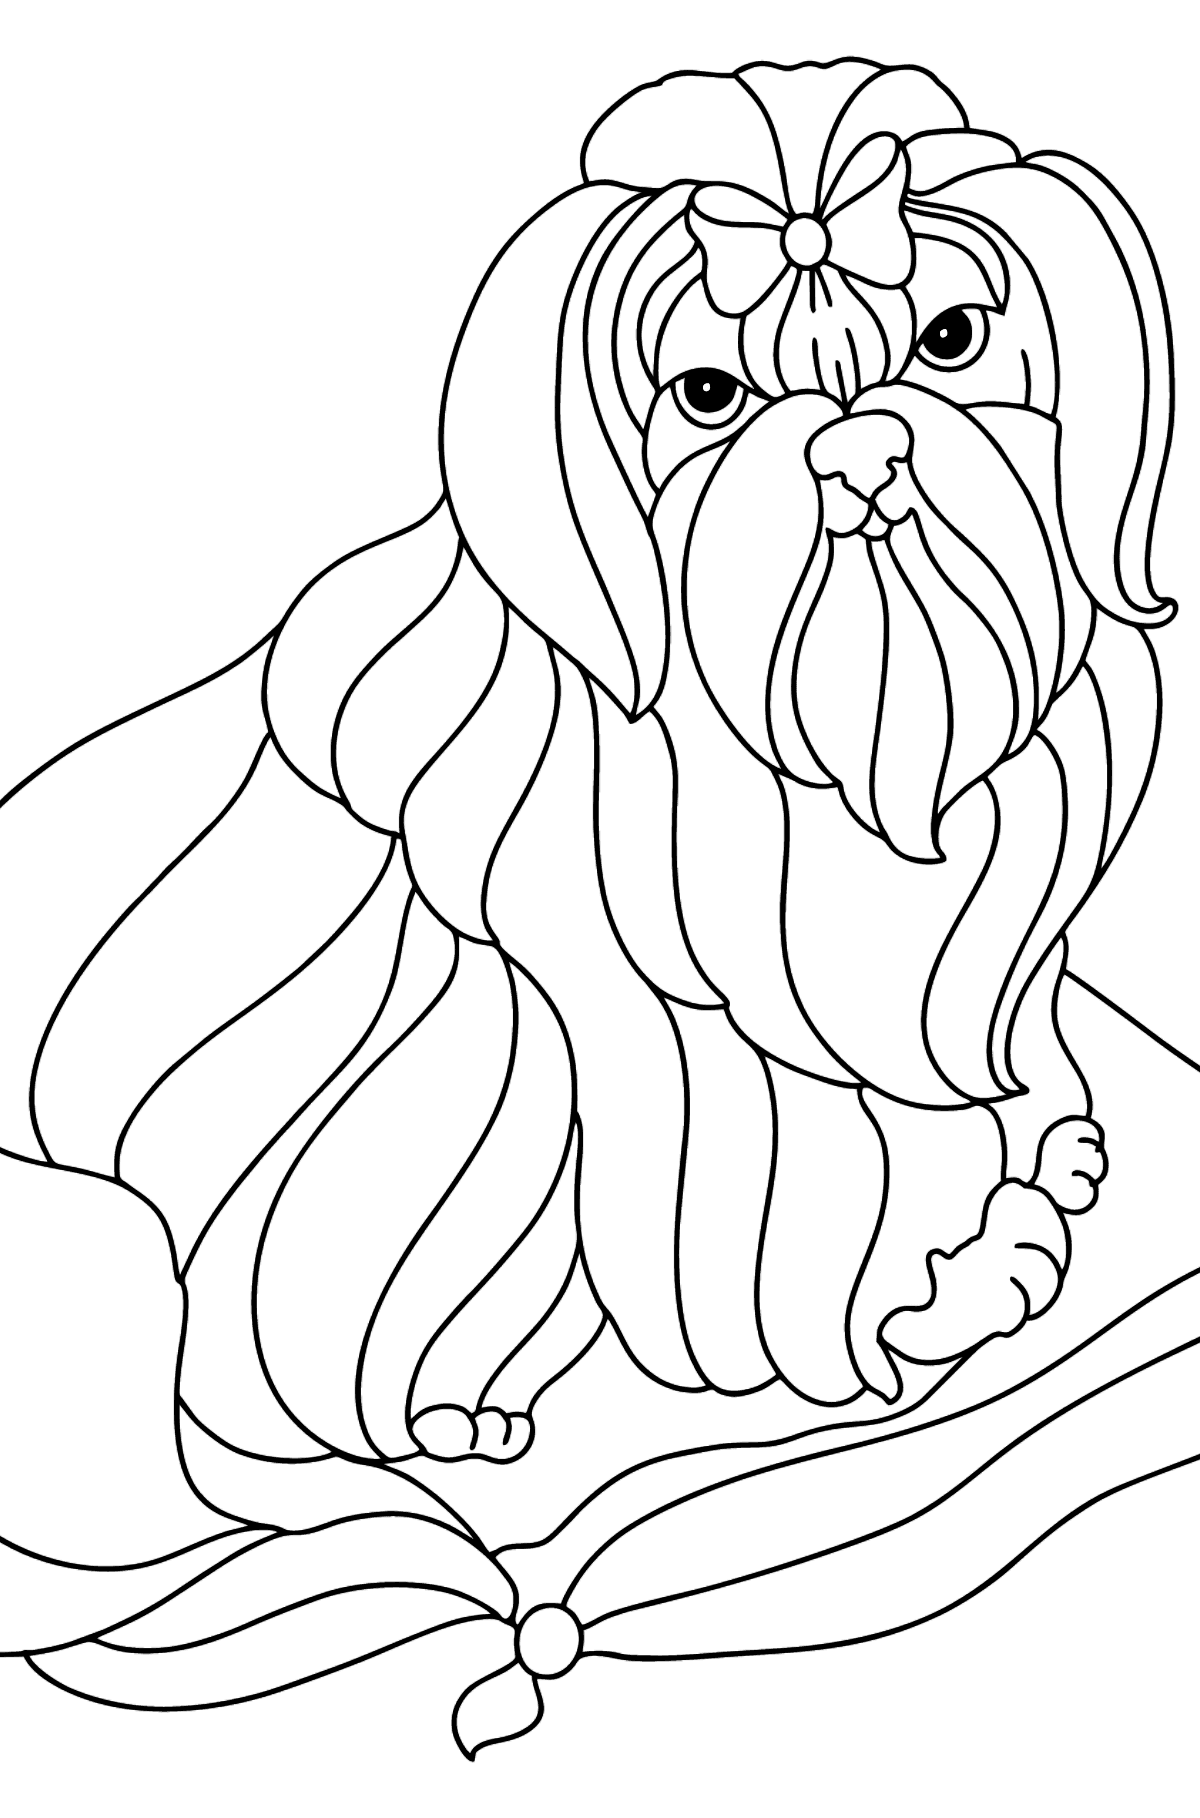 Shitsu coloring page - Coloring Pages for Kids